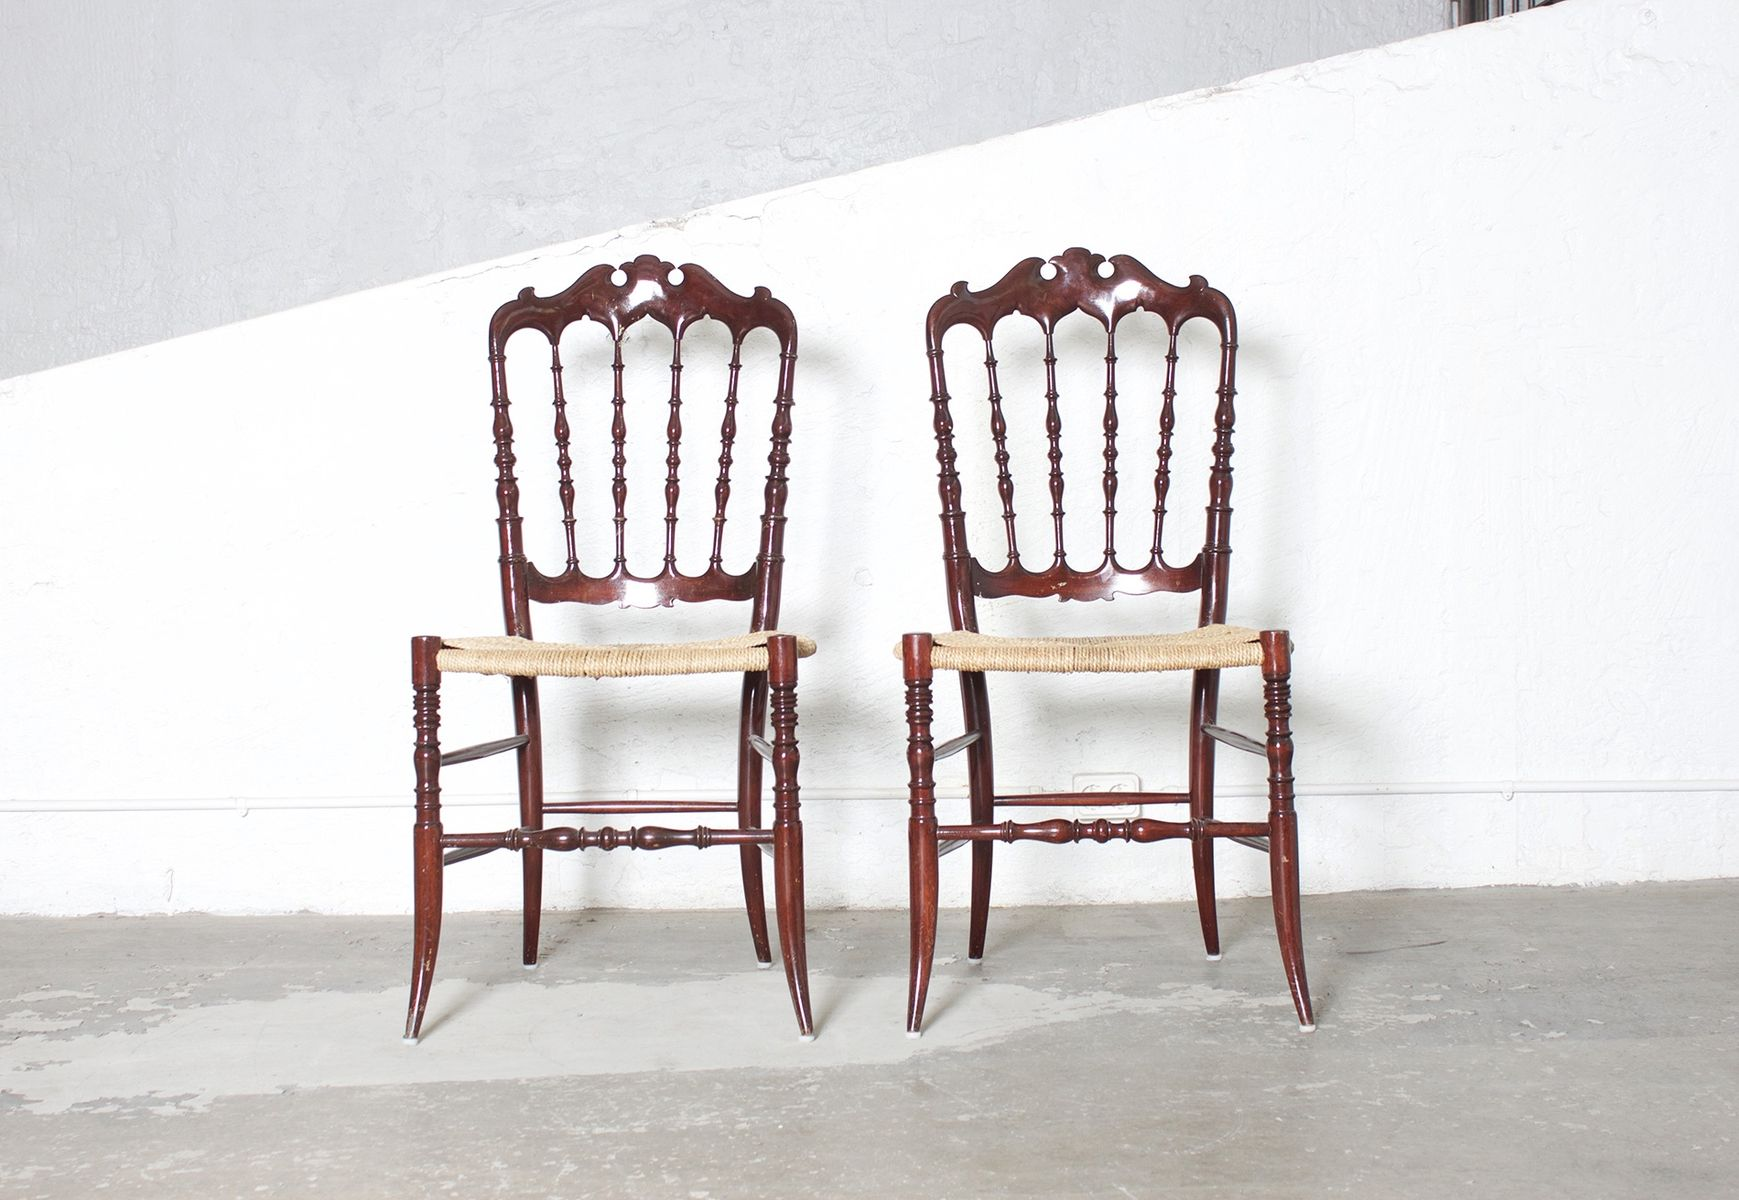 Antique Chiavari Chairs with Woven Cane by Giuseppe Gaetano Set